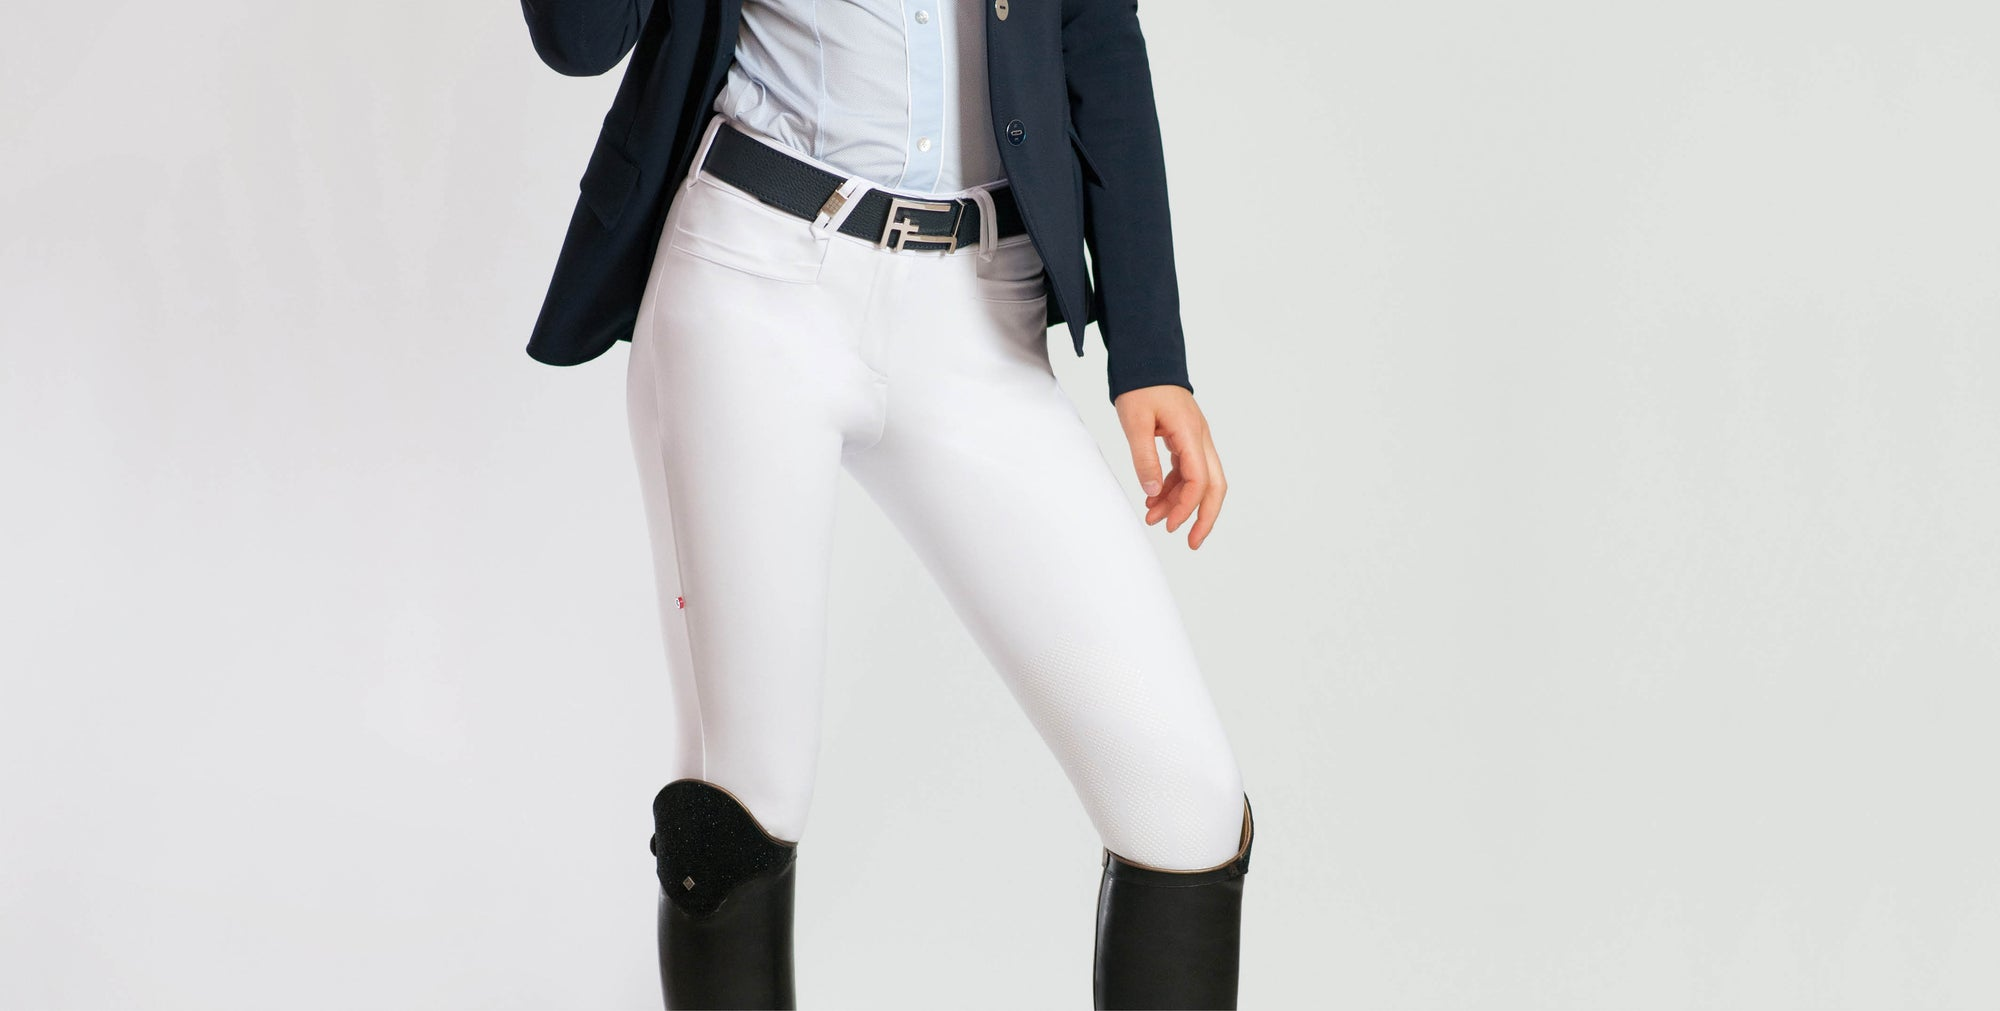 How to Choose your Riding Breeches